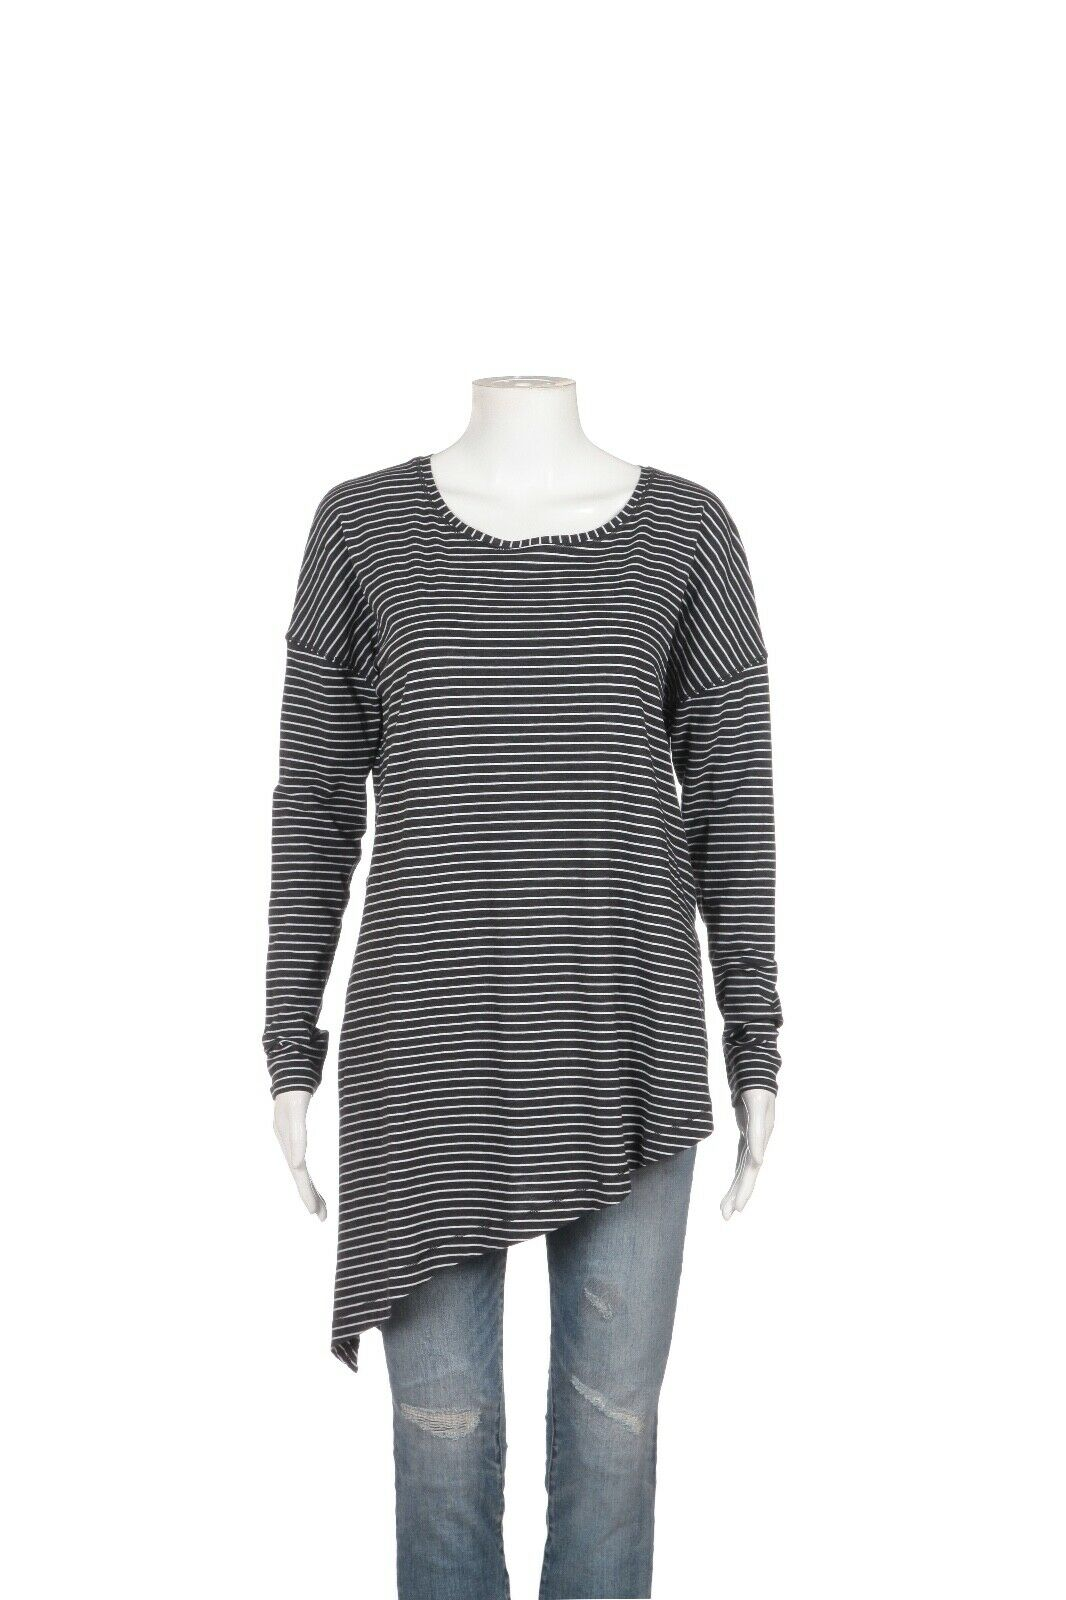 LULULEMON To The Point Striped Long Sleeve Tee Size 8 (New)